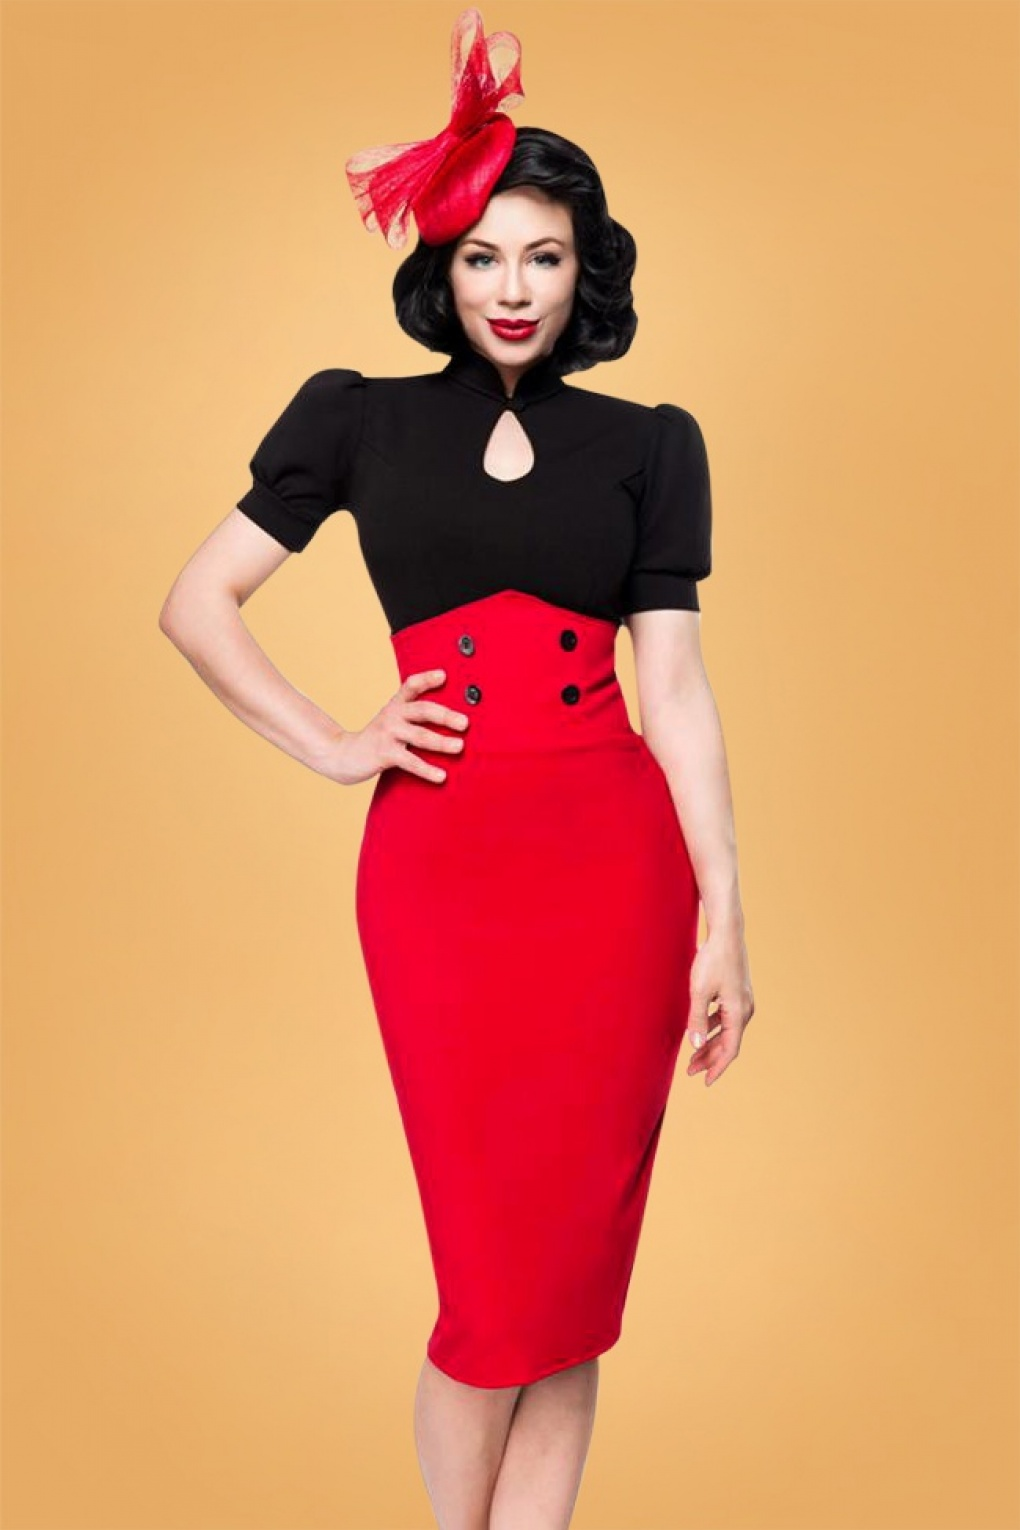 1950s Fashion History: Women's Clothing 50s Andrea Pencil Skirt in Lipstick Red £34.83 AT vintagedancer.com